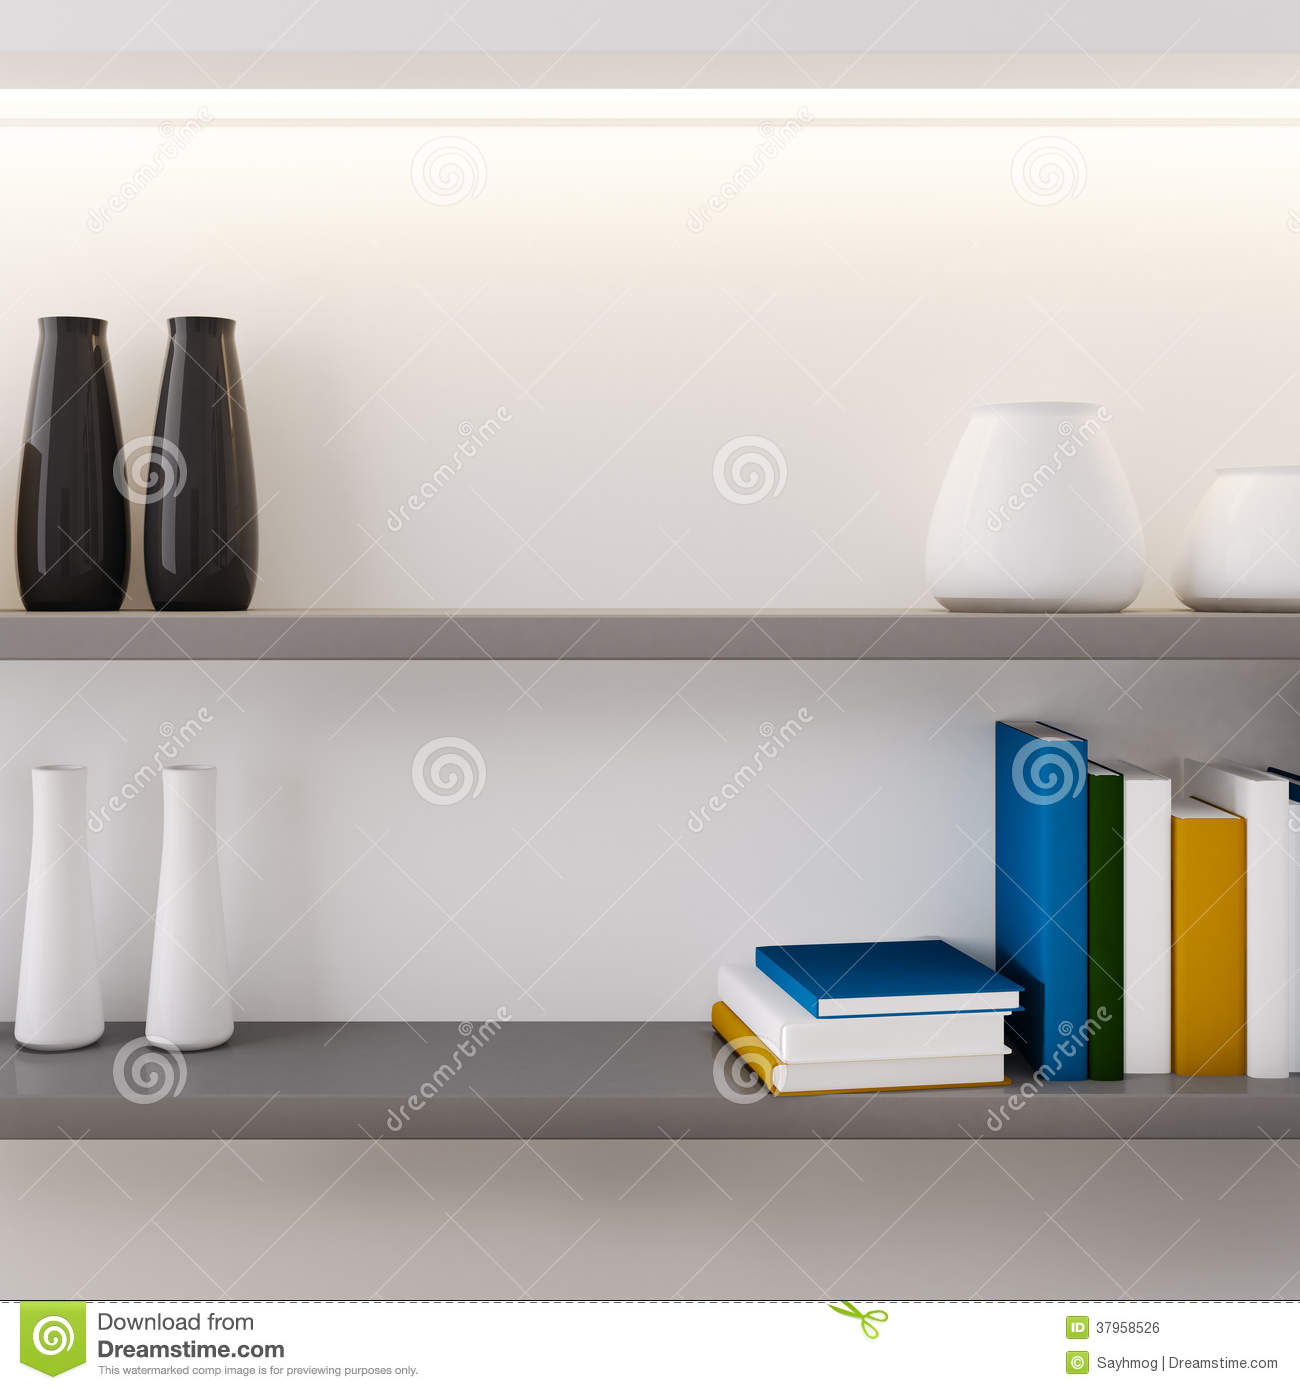 Vase and book decorated on shelf closeup